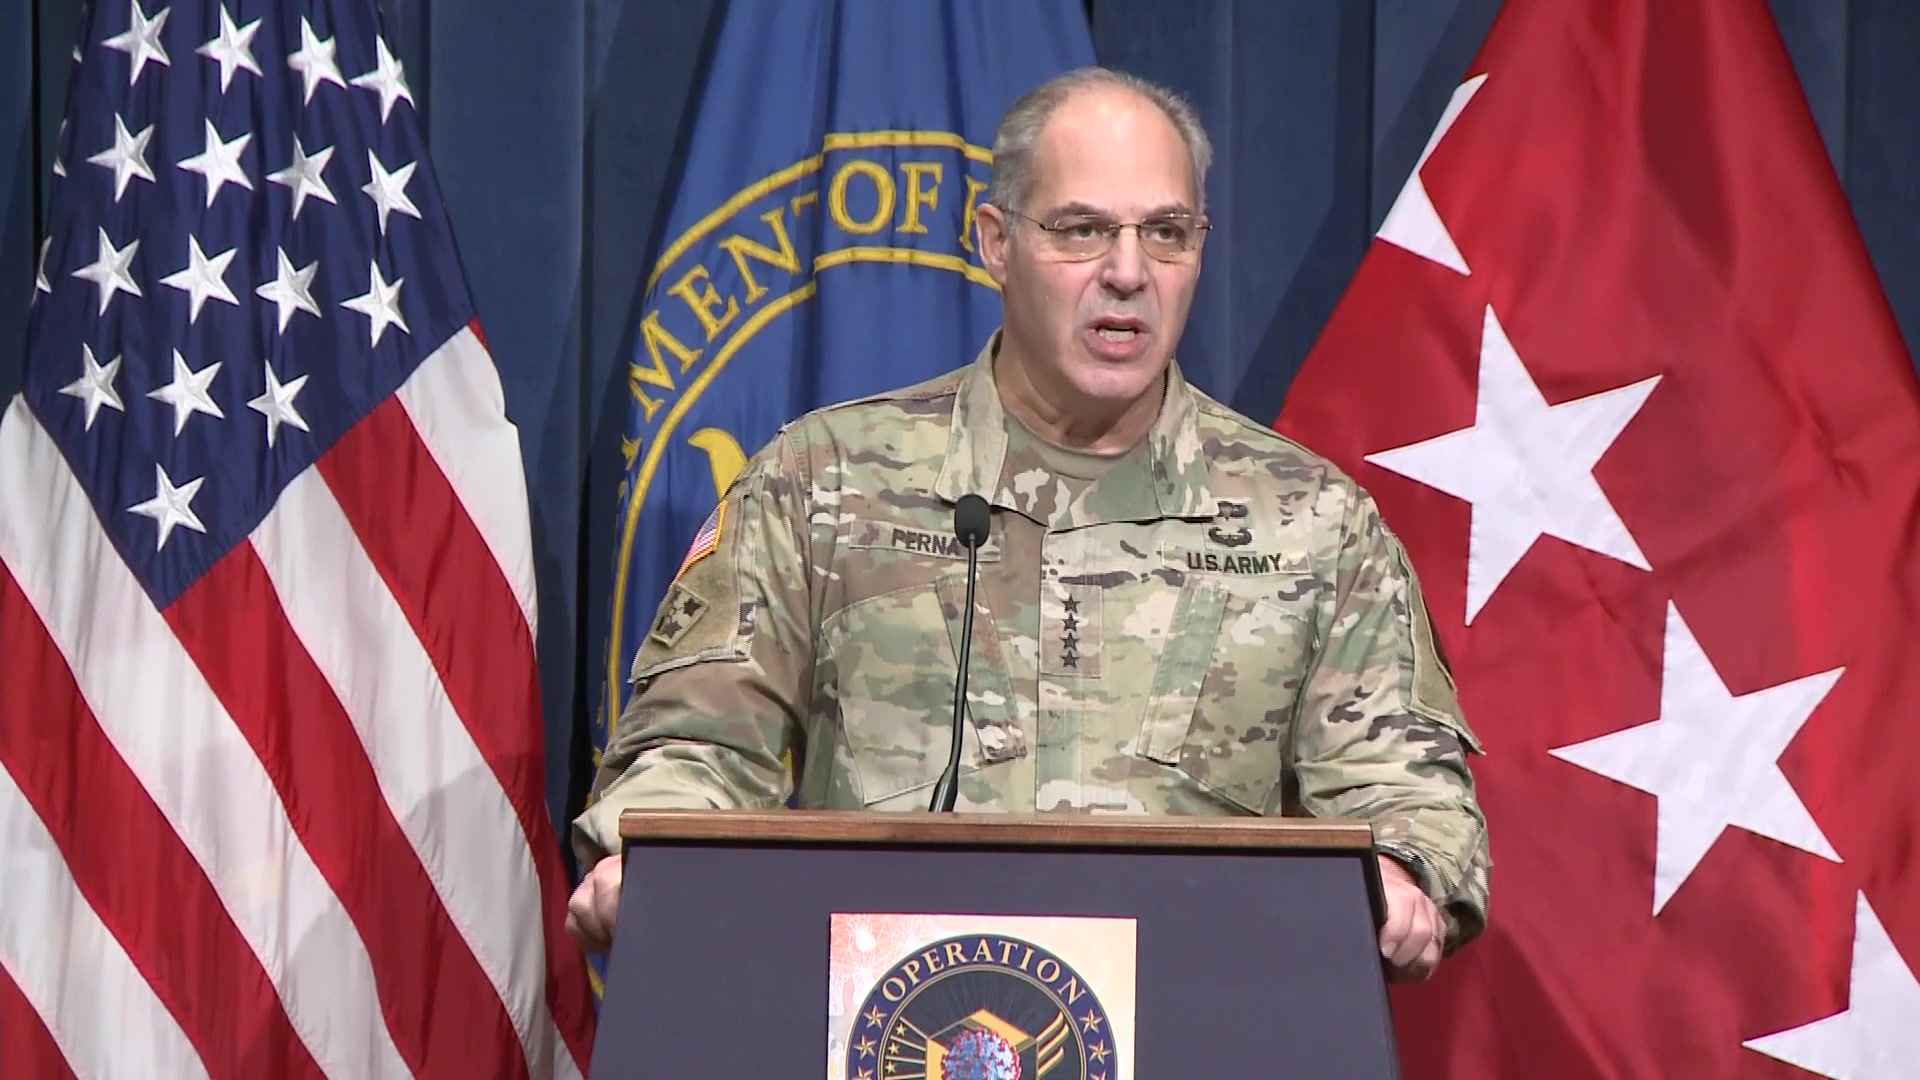 Army Gen. Gus F. Perna, chief operating officer of Operation Warp Speed, briefs the media on Operation Warp Speed and the distribution of the Moderna COVID-19 vaccine, Dec. 19, 2020.